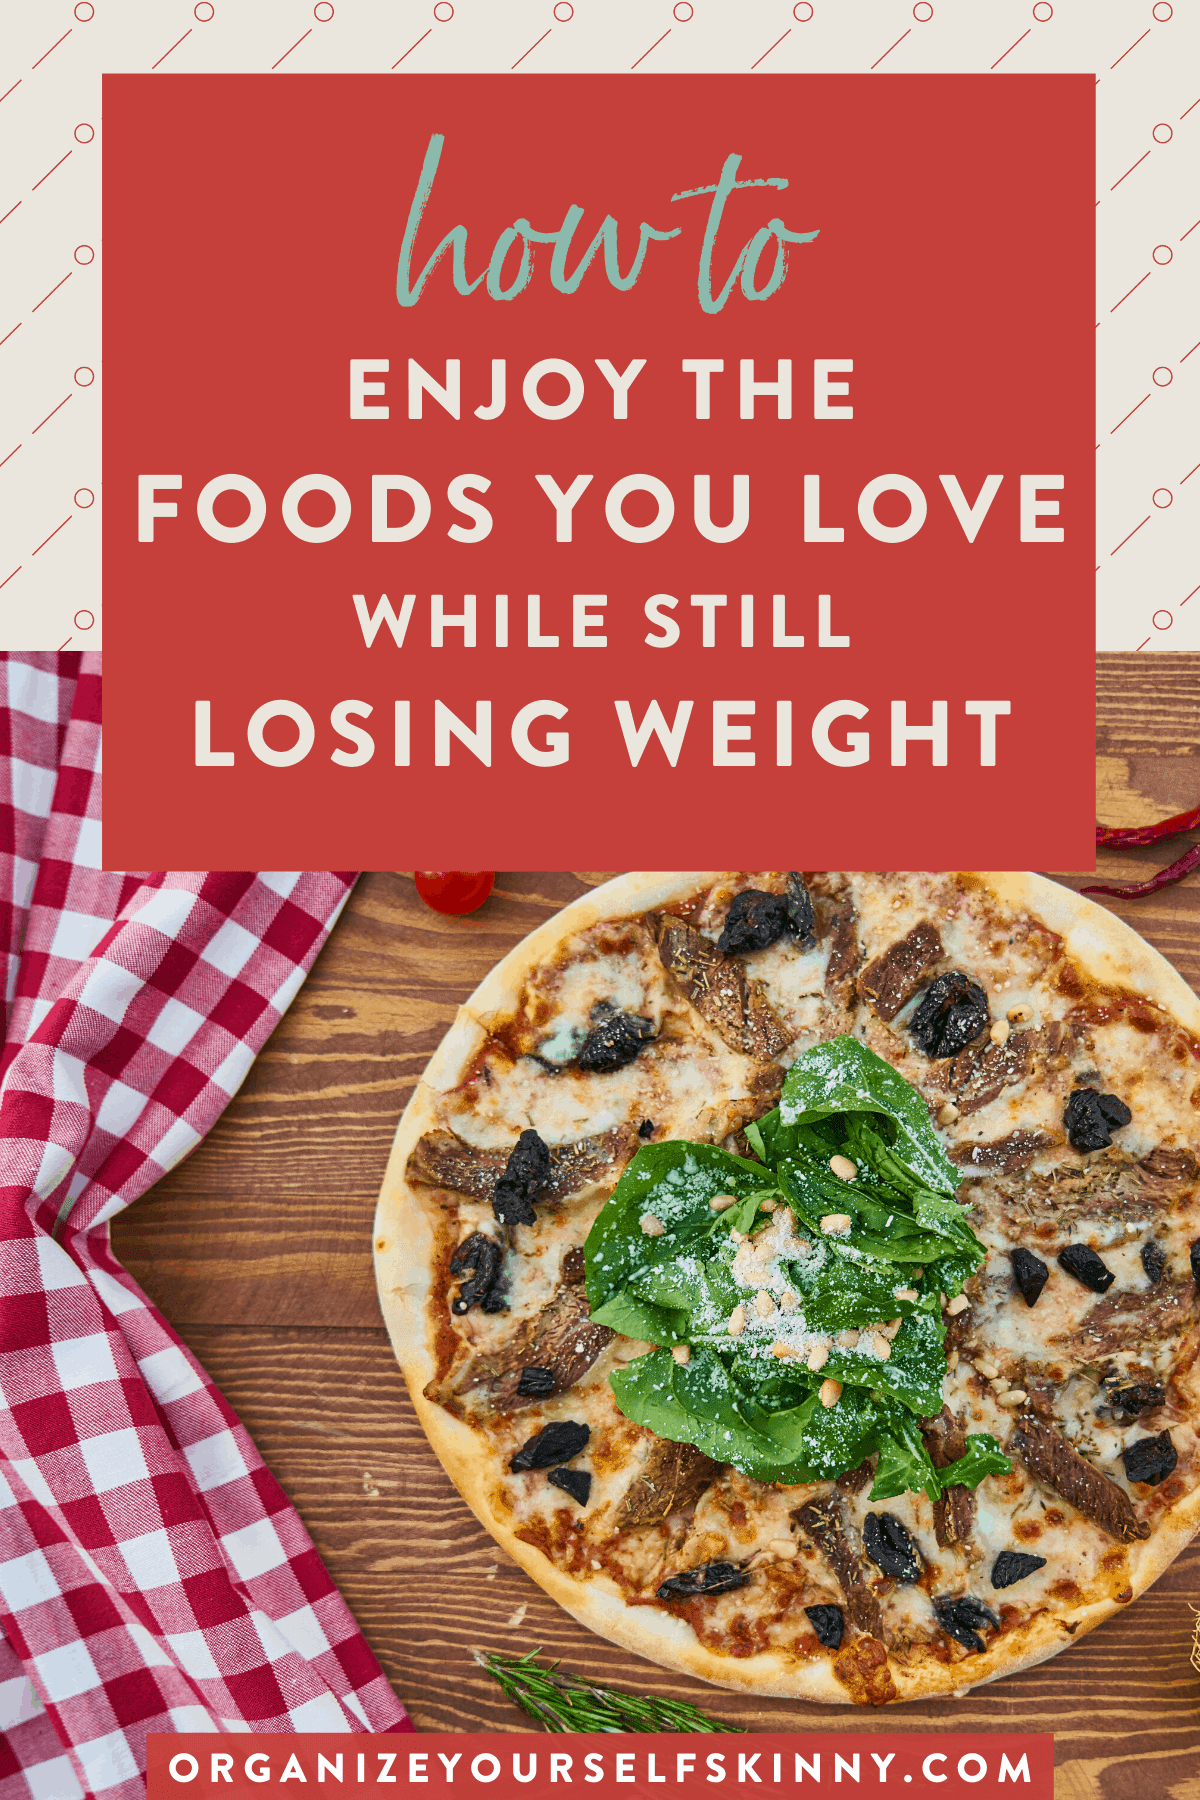 how-to-enjoy-the-foods-you-love-while-still-losing-weight